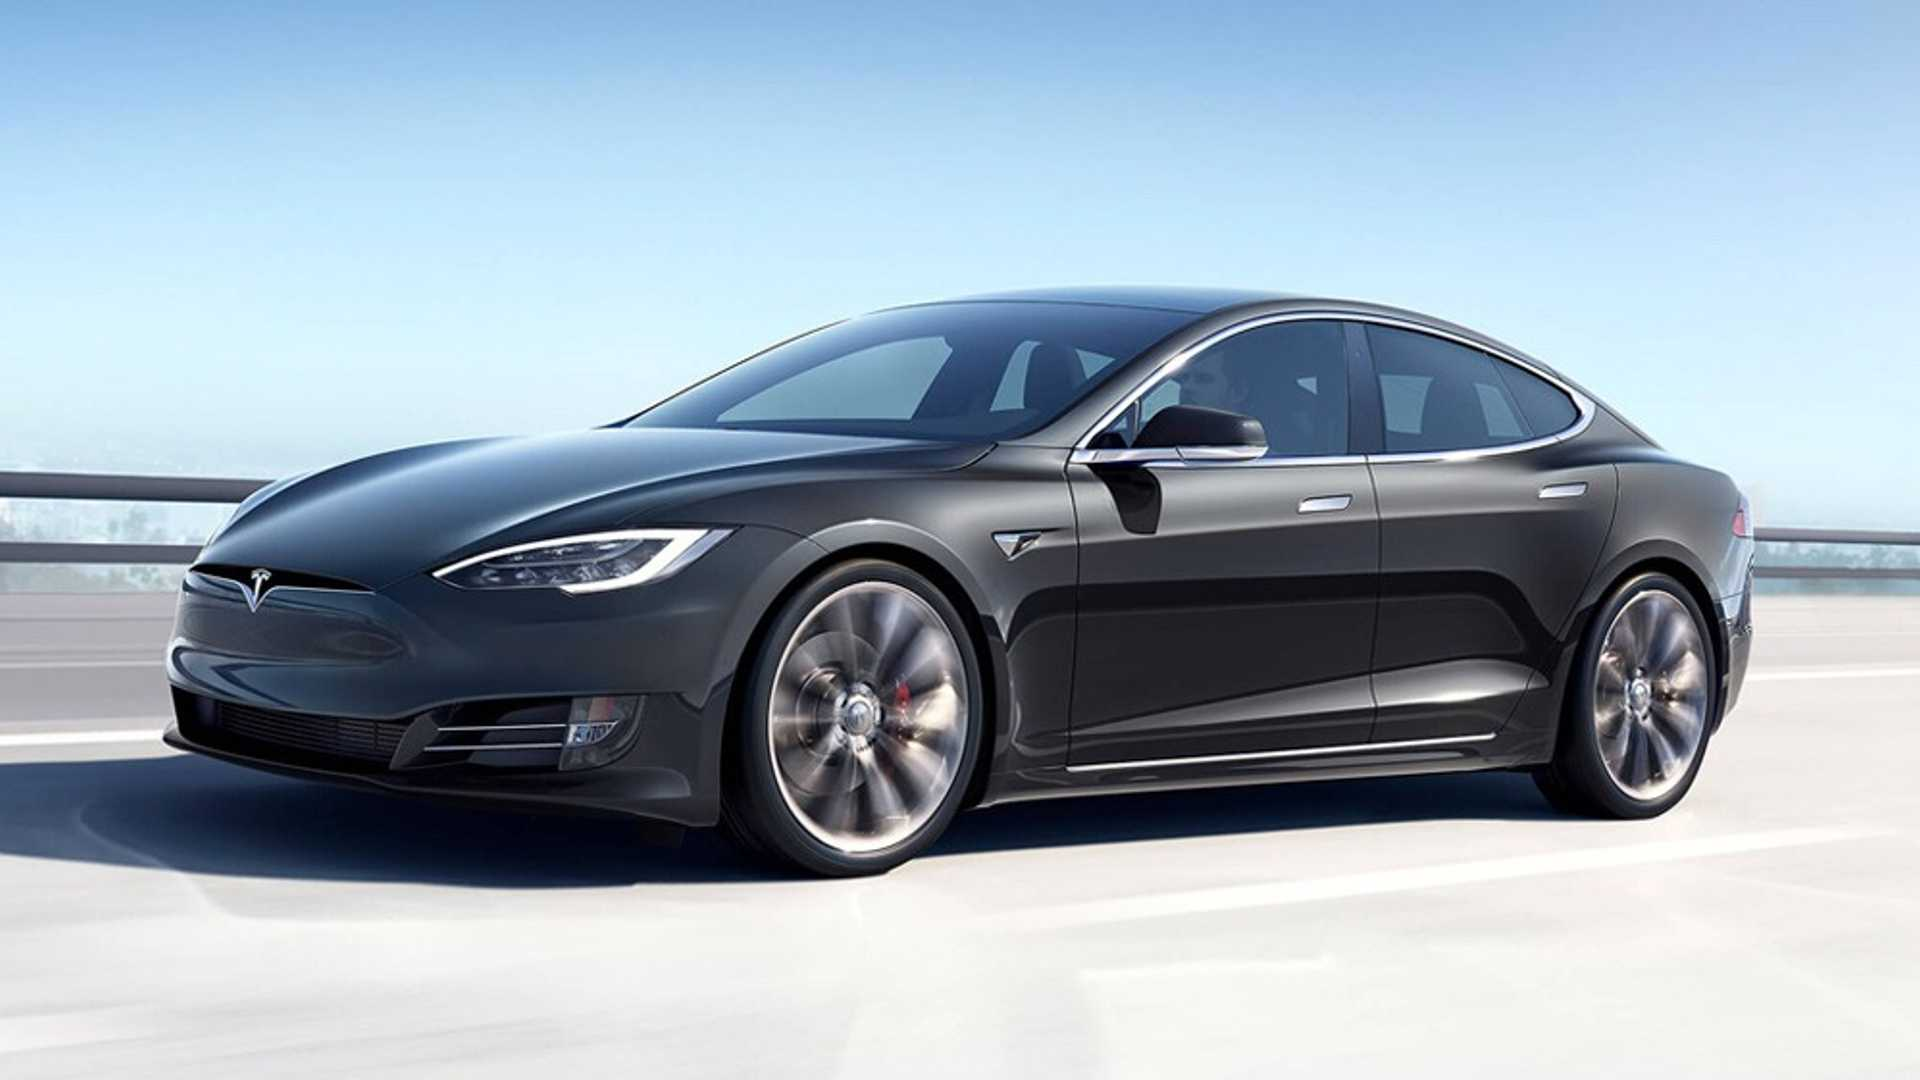 How much do tesla suv cost